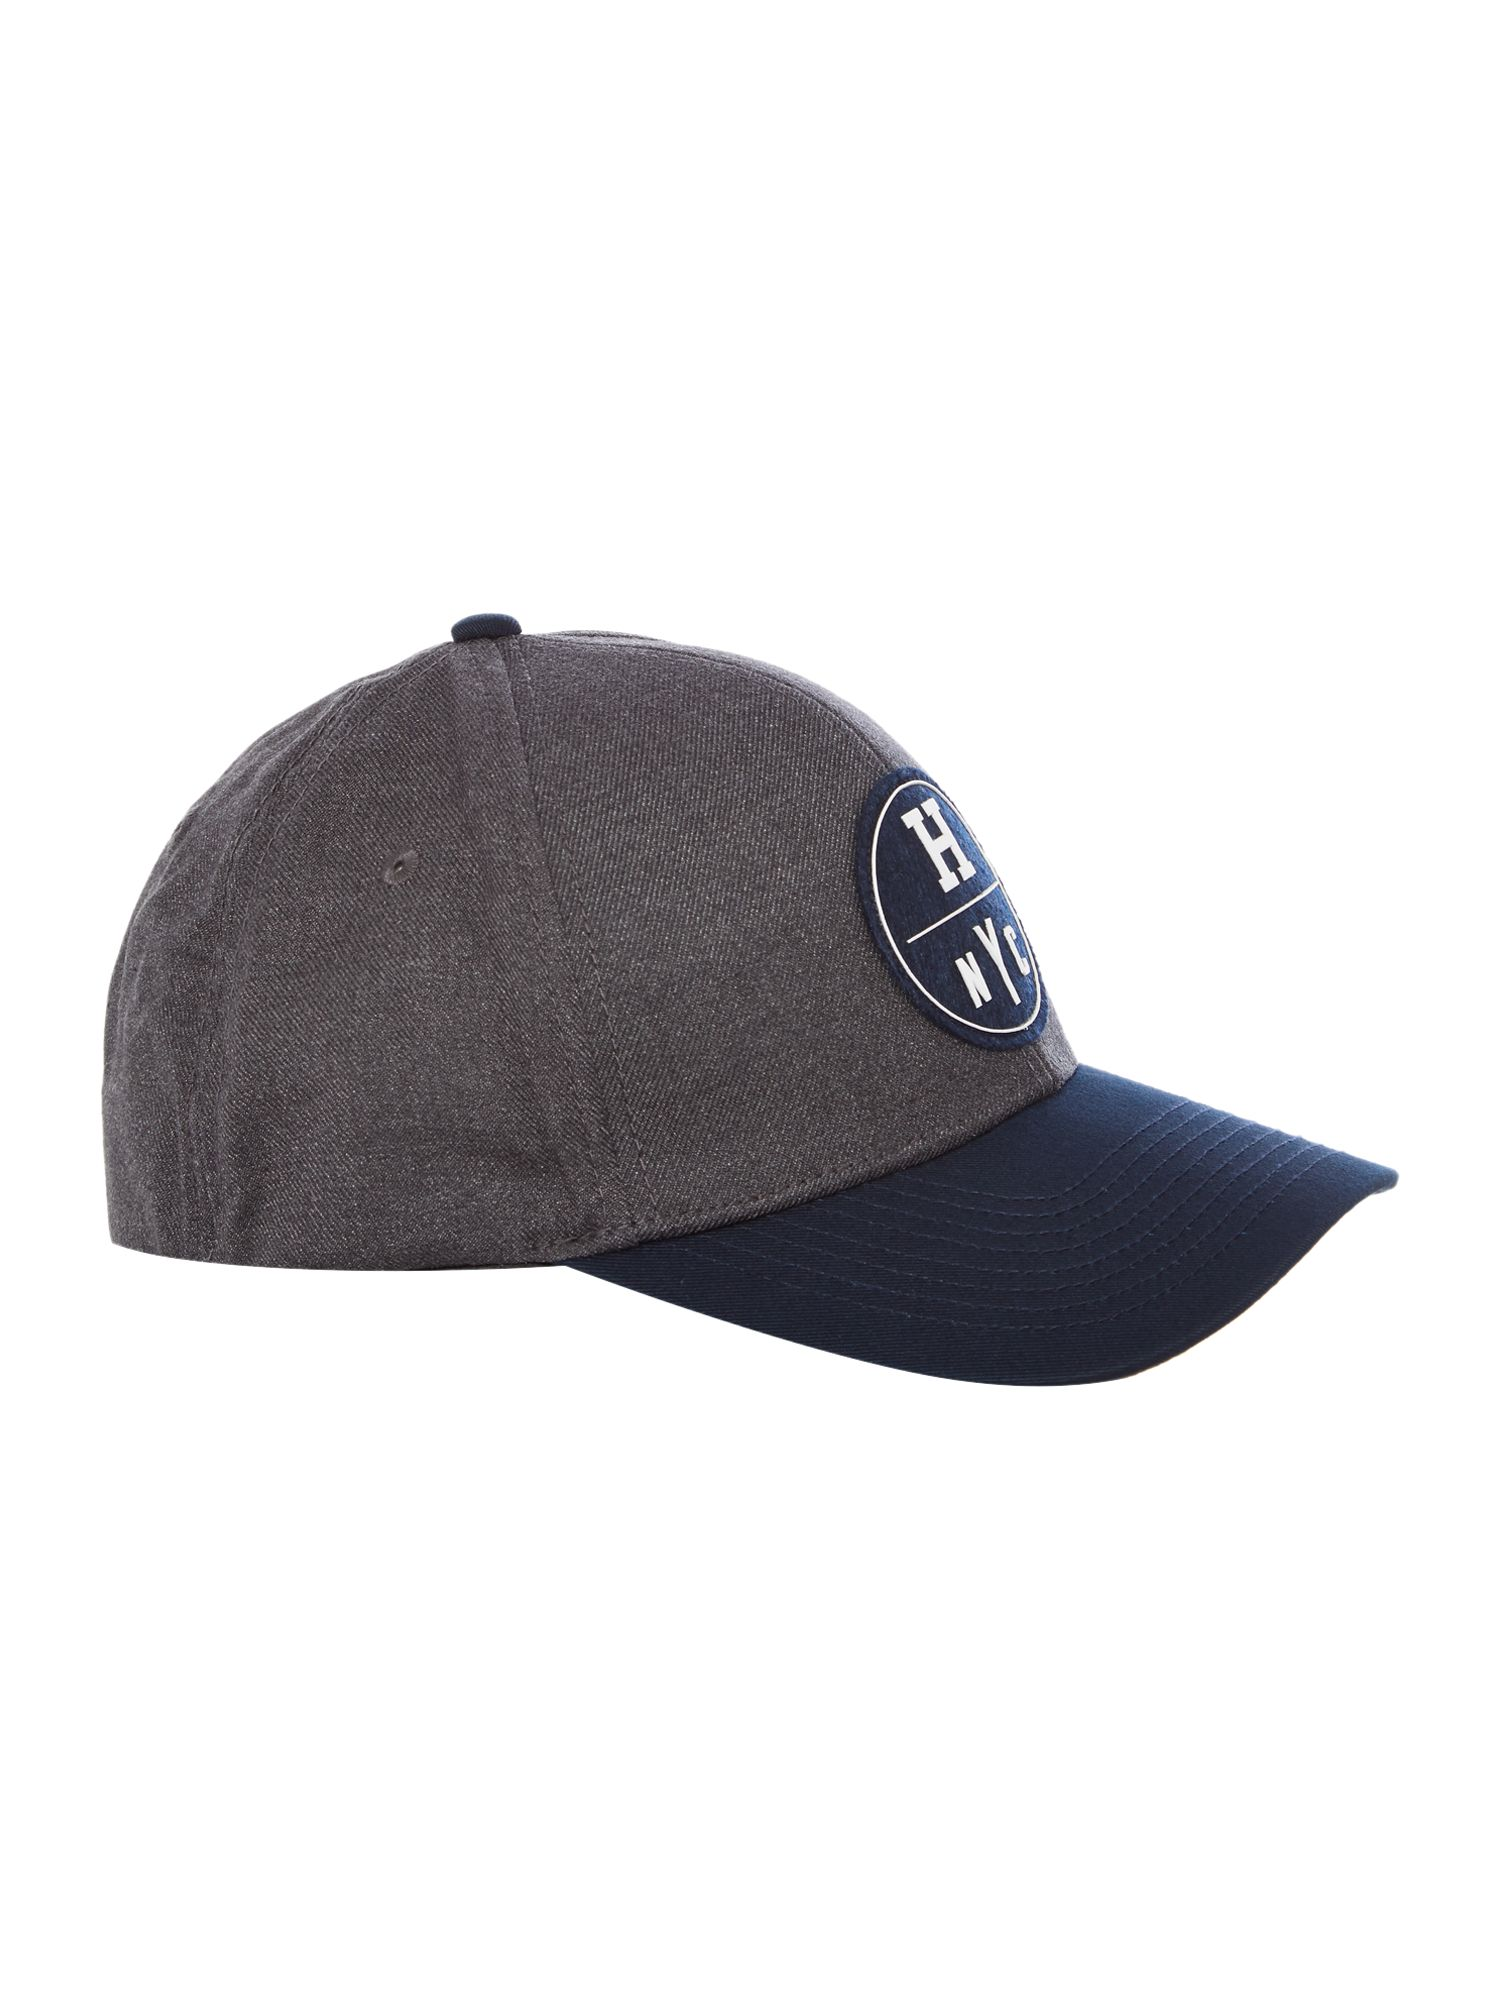 Tommy Hilfiger Eddy H Logo Brushed Twill Cap Charcoal